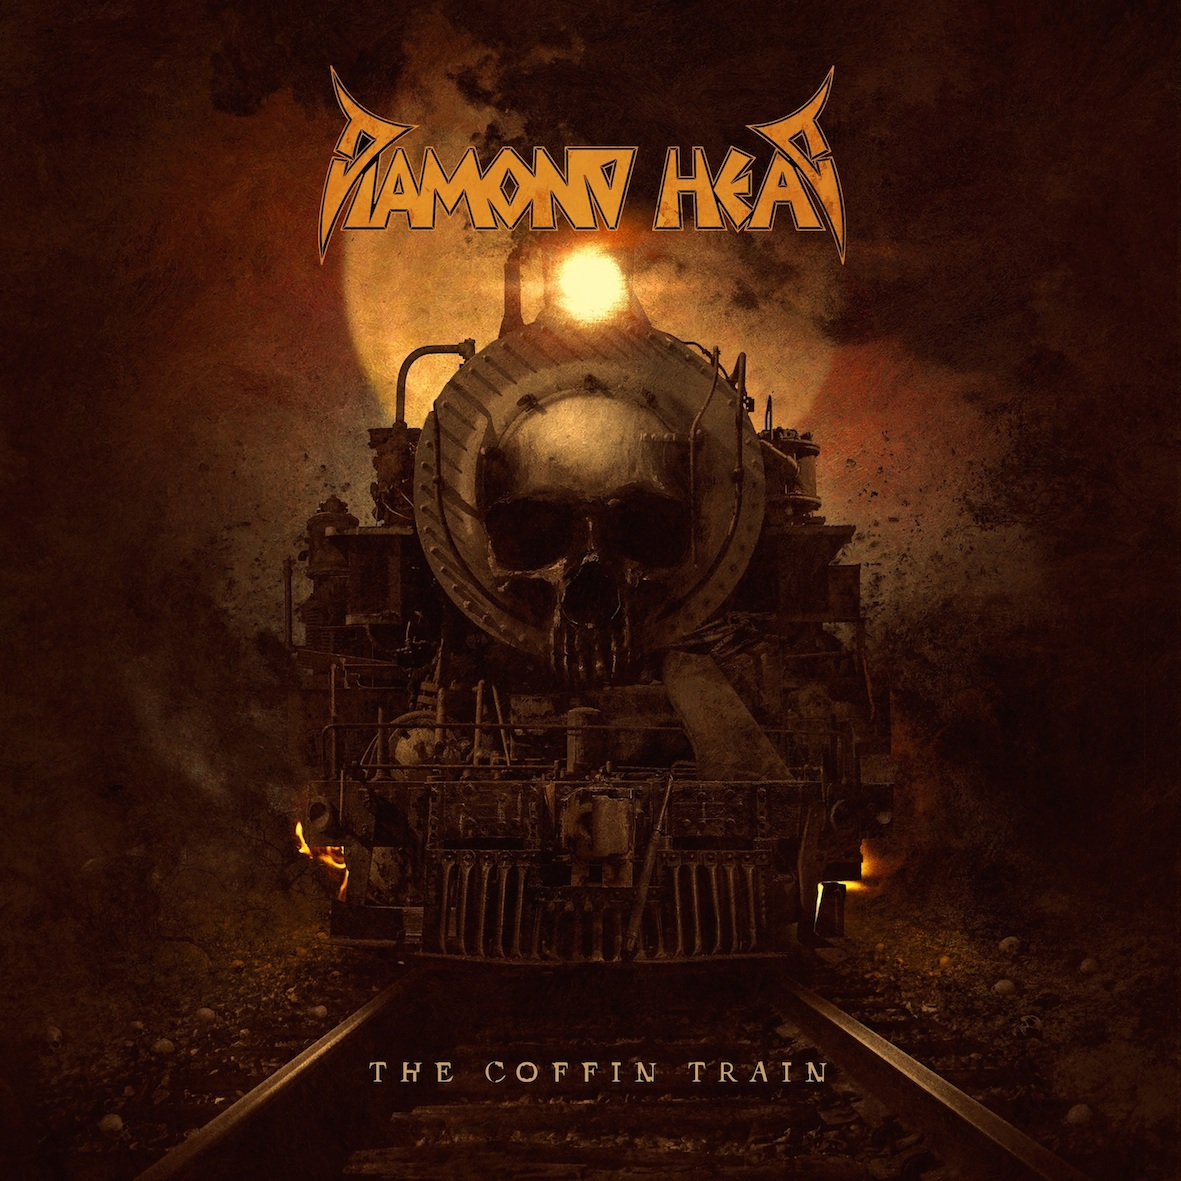 diamond-head-the-coffin-train-ewige-helden-album-review